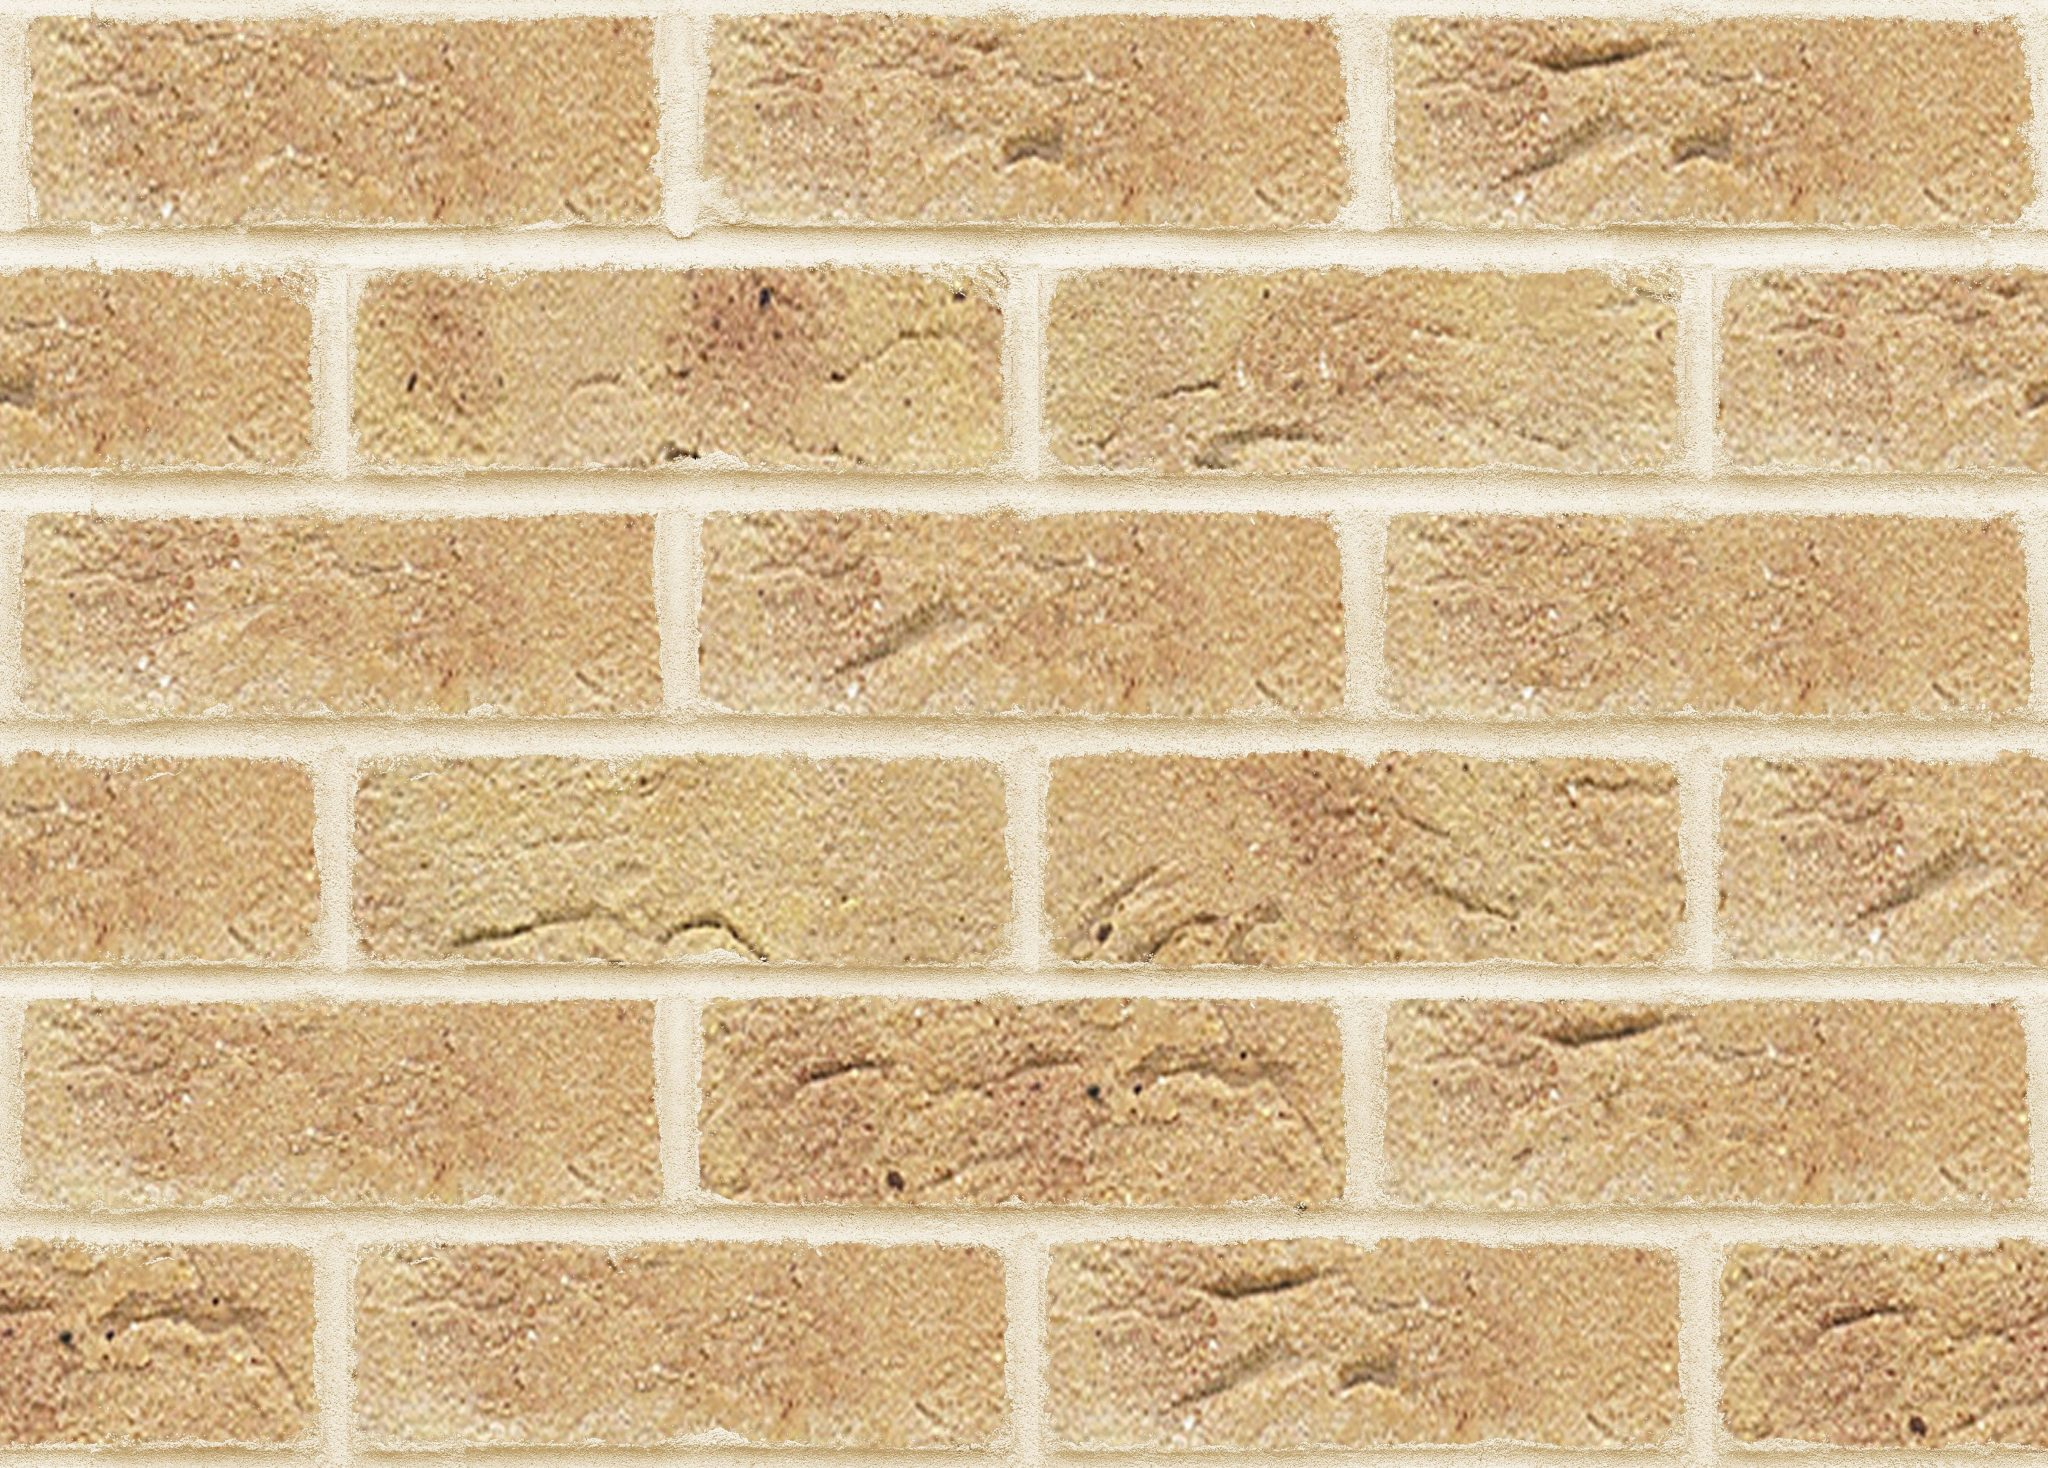 GovernorKing230x76-110-240 - NSW Bricks